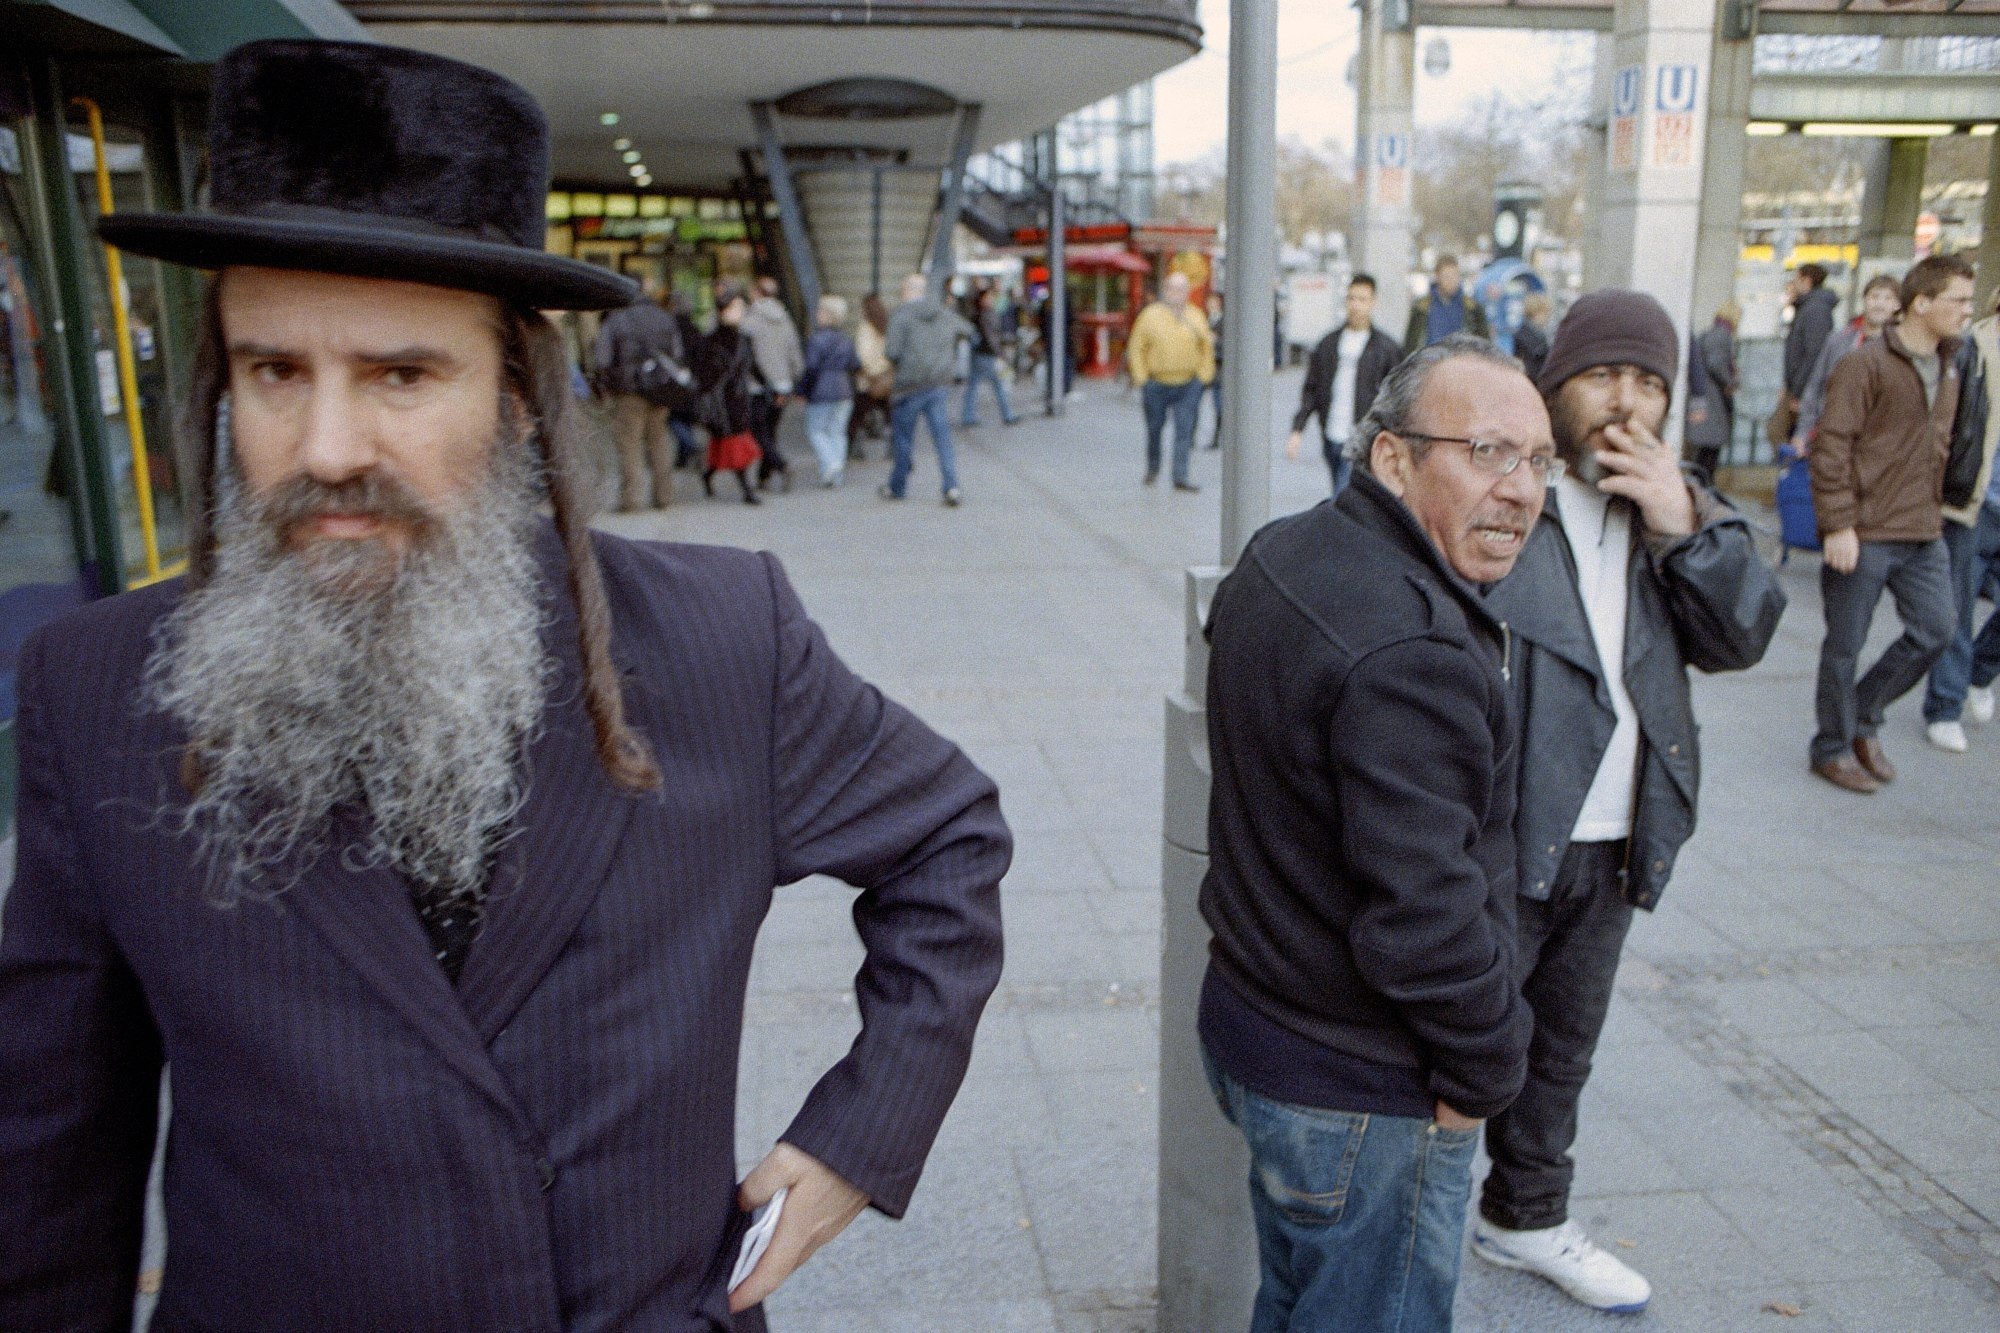 An orthodox Jew at Bahnhof Zoo, Berlin. Photo by Holger Biermann.